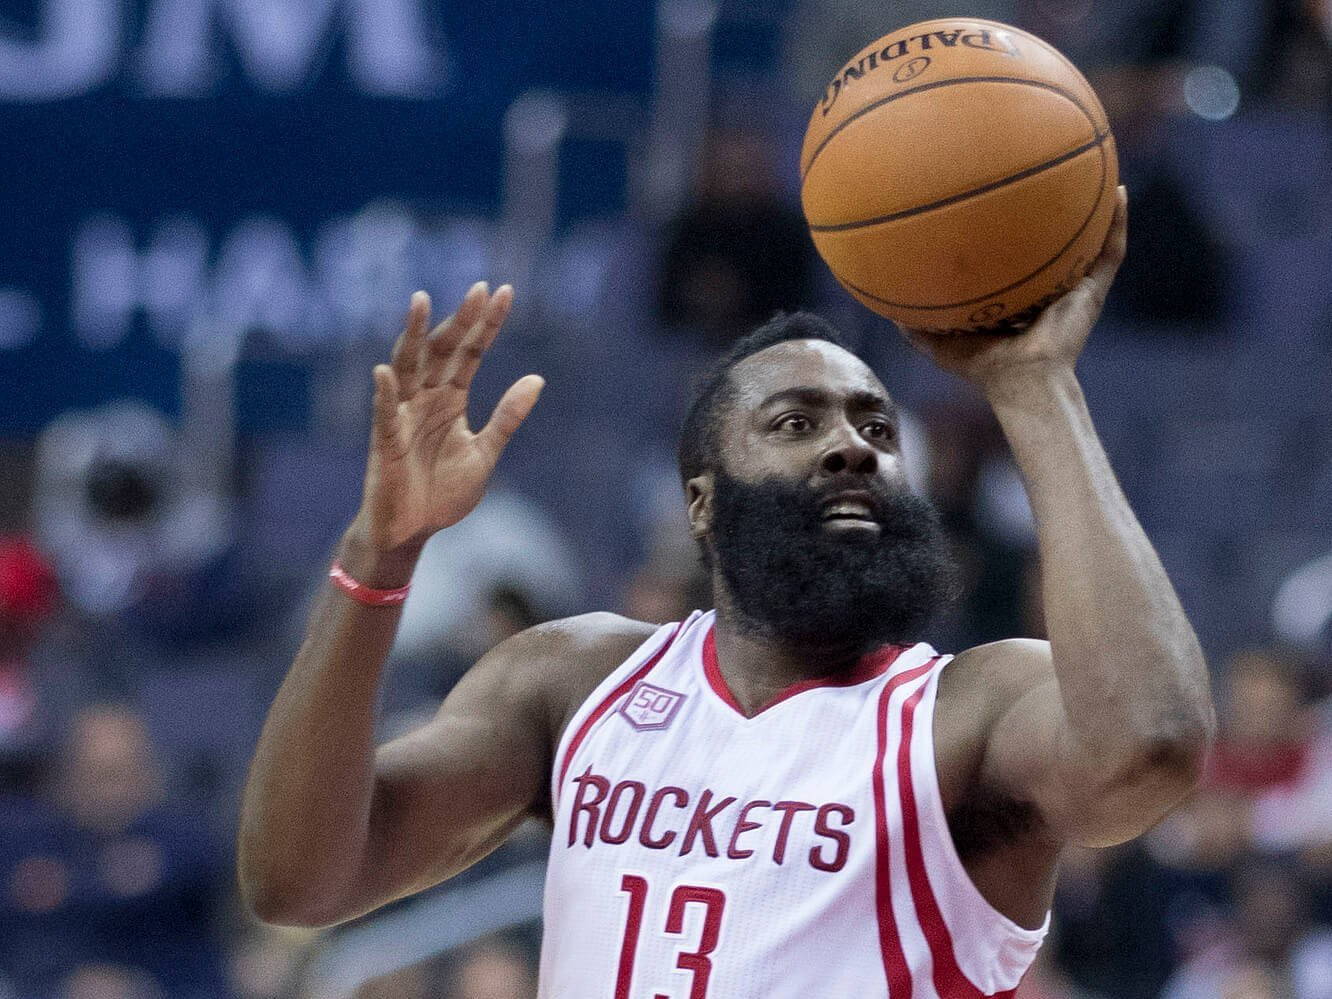 NBA Picks for MLK Day: 76ers Handle Harden